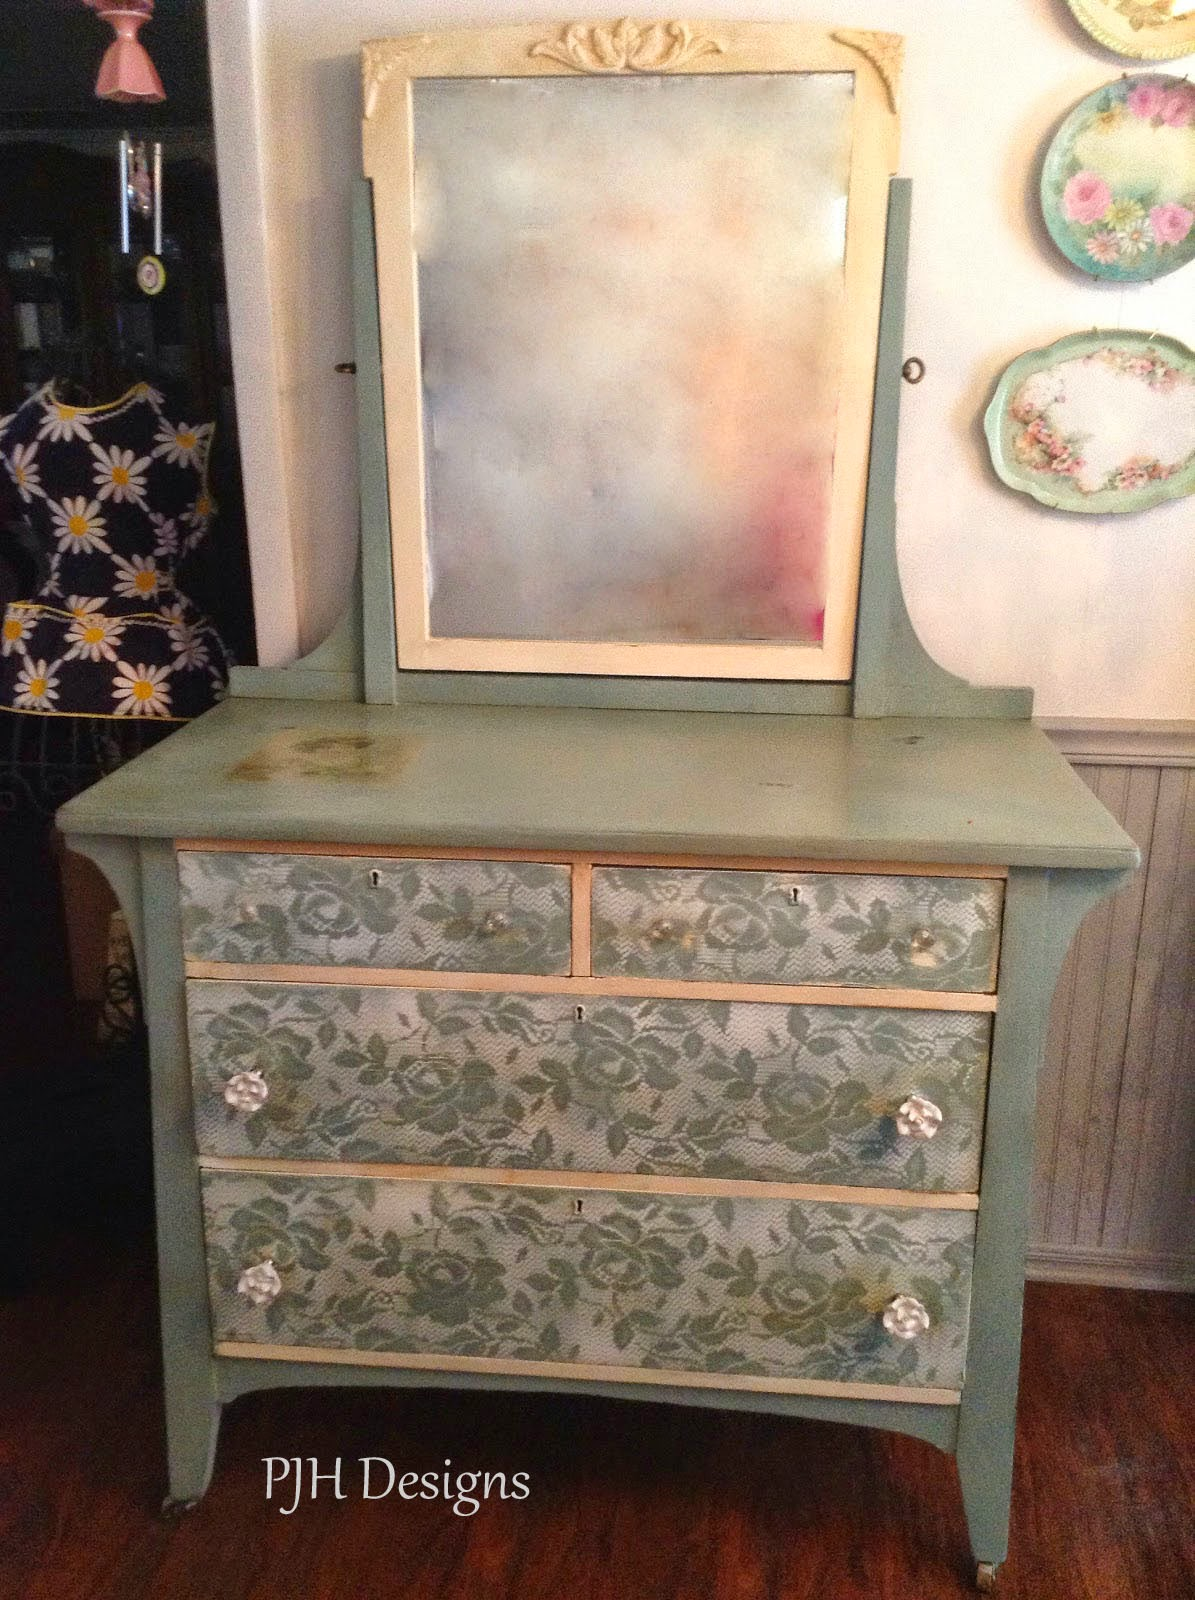 Pjh designs hand painted antique furniture lovely duck for Egg designs furniture